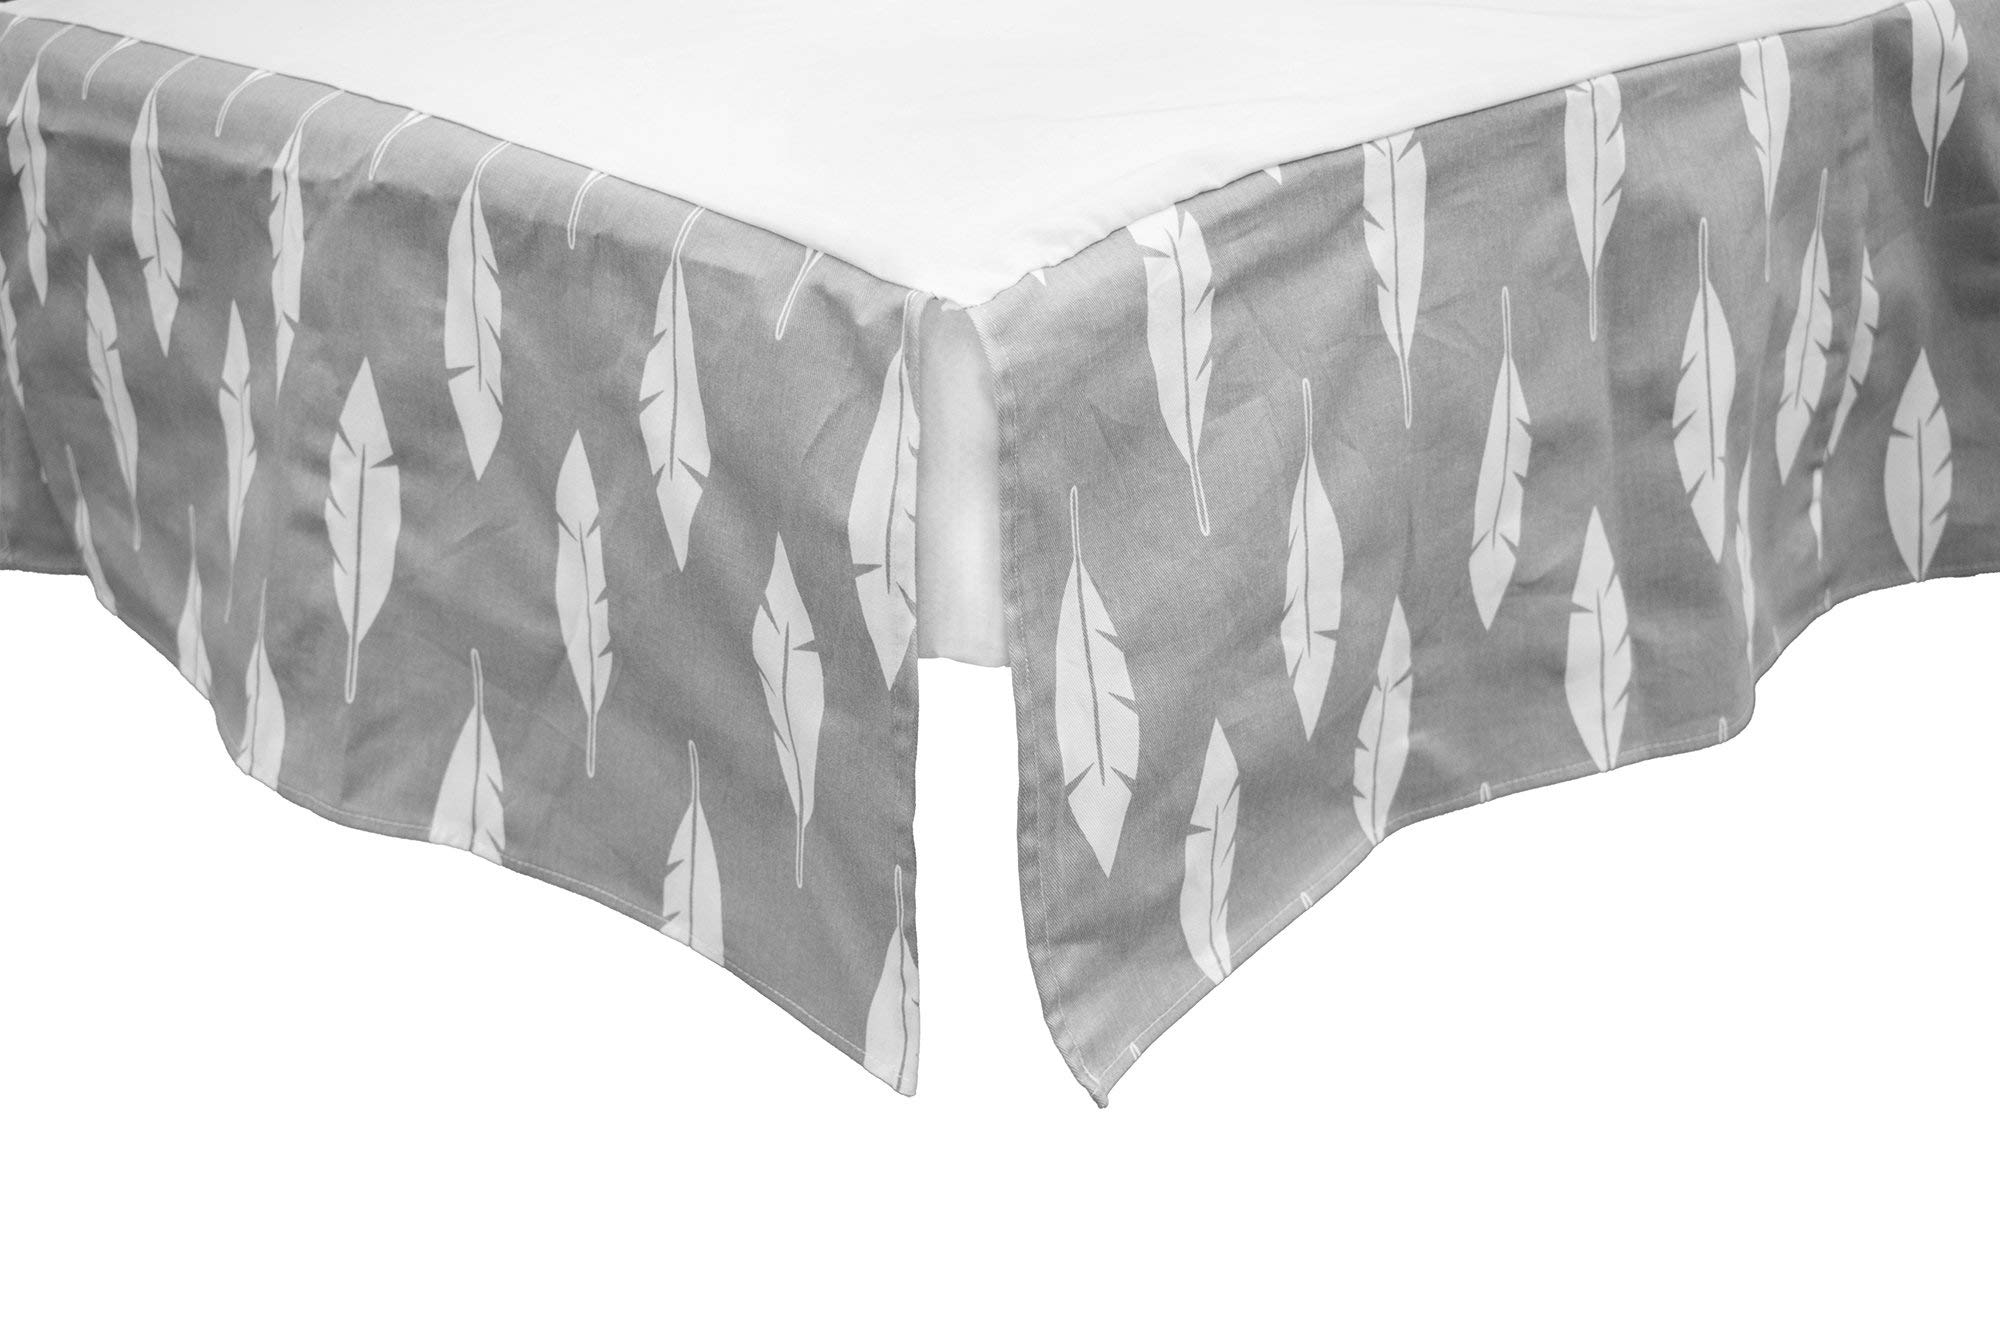 BOOBEYEH & DESIGN Baby Crib Bedding 4 Piece Set, Perfect for Baby Girls and Boys, Includes Gray and White Feather Design, Fitted Sheet, Crib Comforter, Comforter Cover, Skirt. by BOOBEYEH & DESIGN (Image #5)